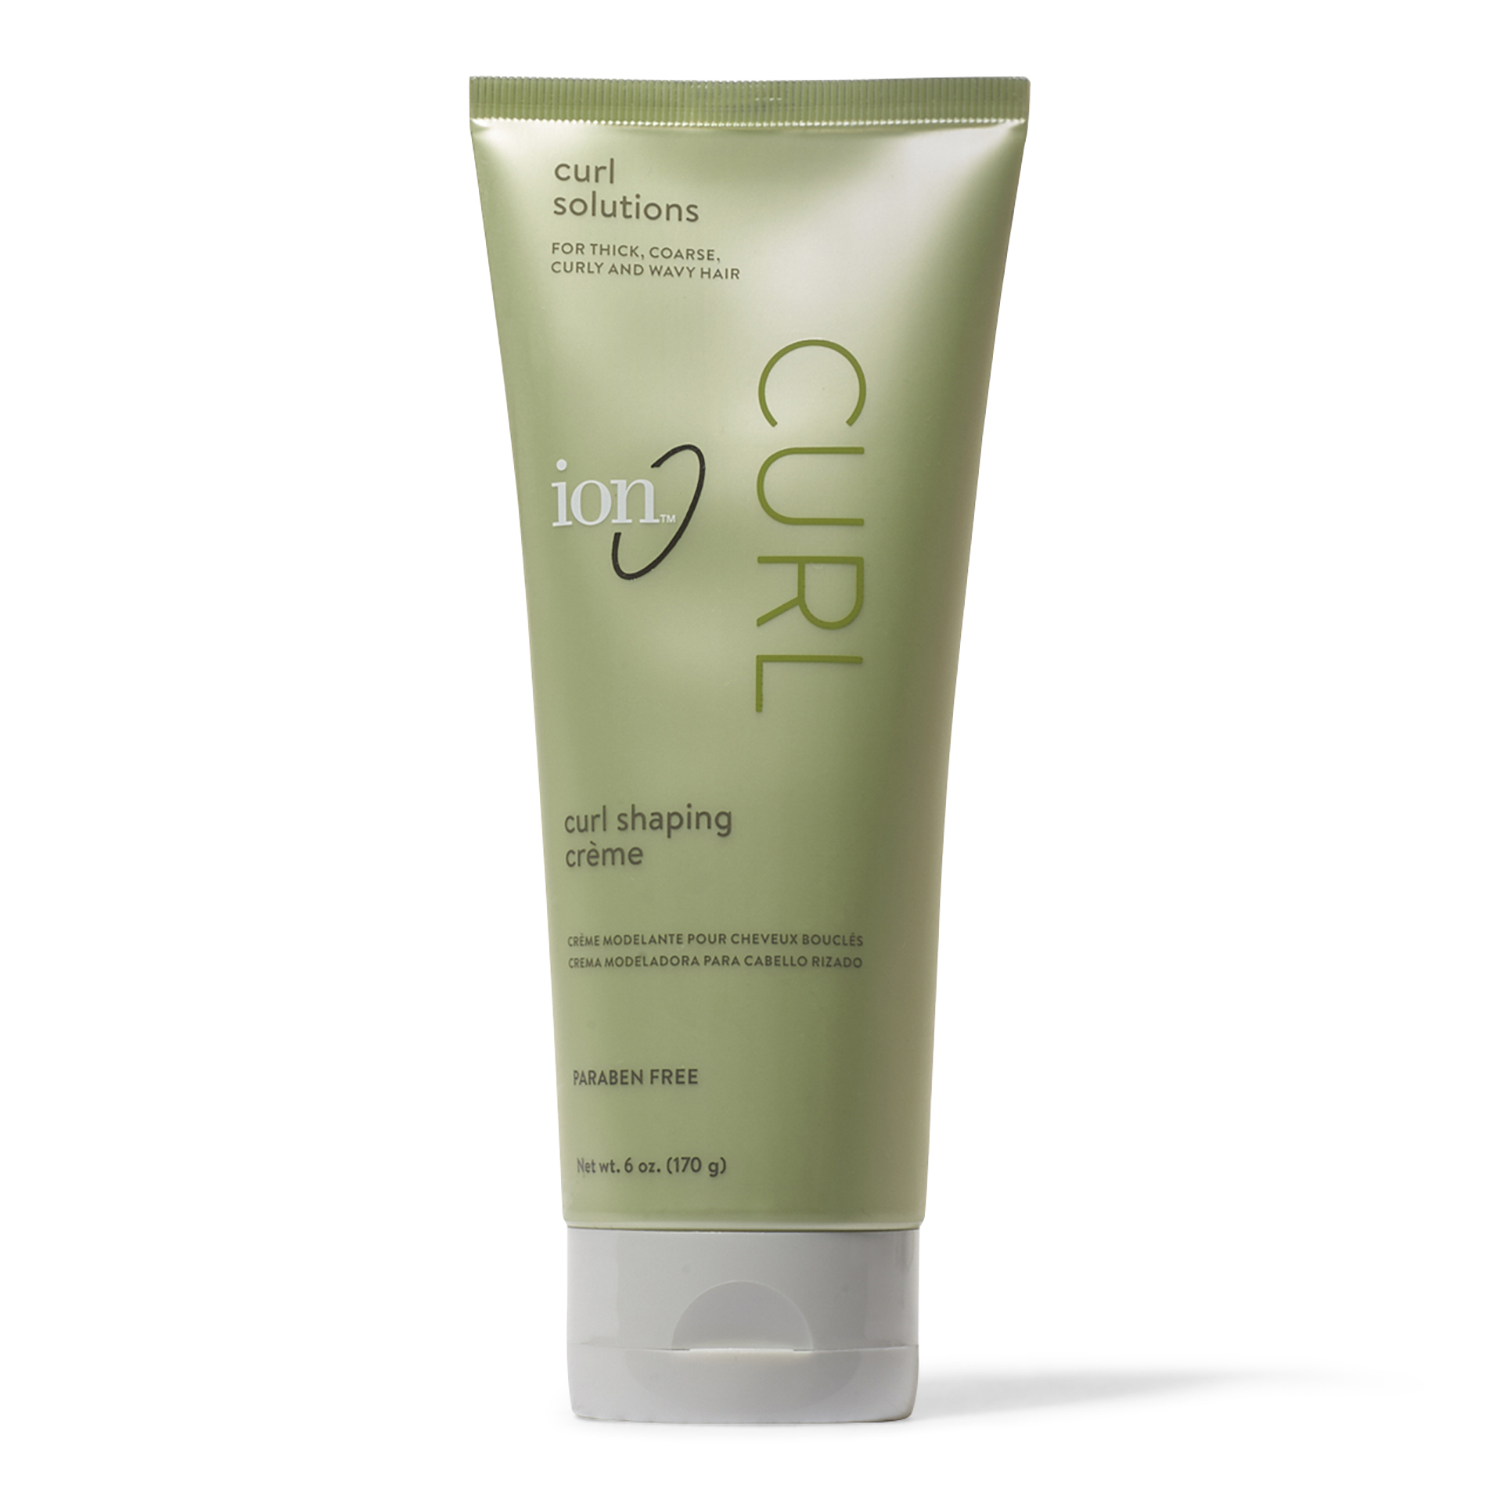 Sally Beauty coupon: Curl Shaping Creme